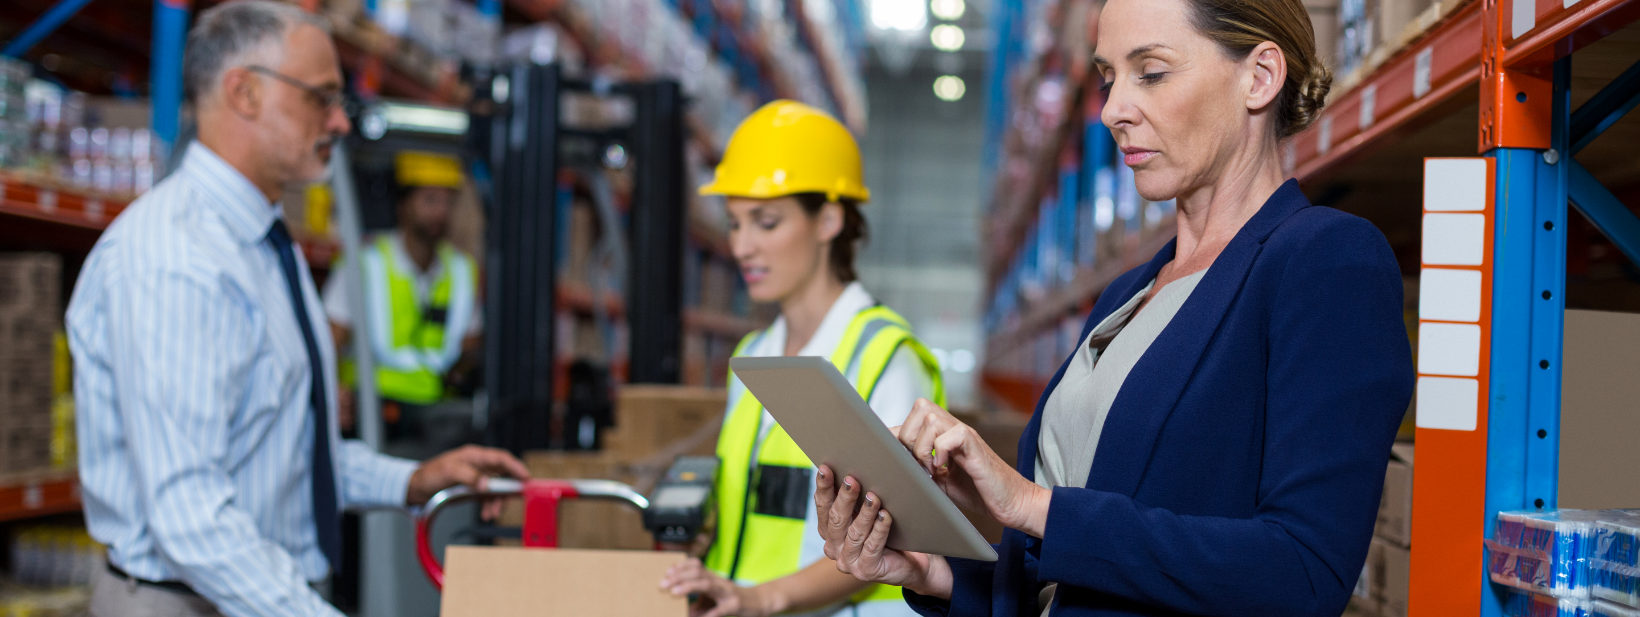 warehouse-manager-using-digital-tablet-39DBC9R.png